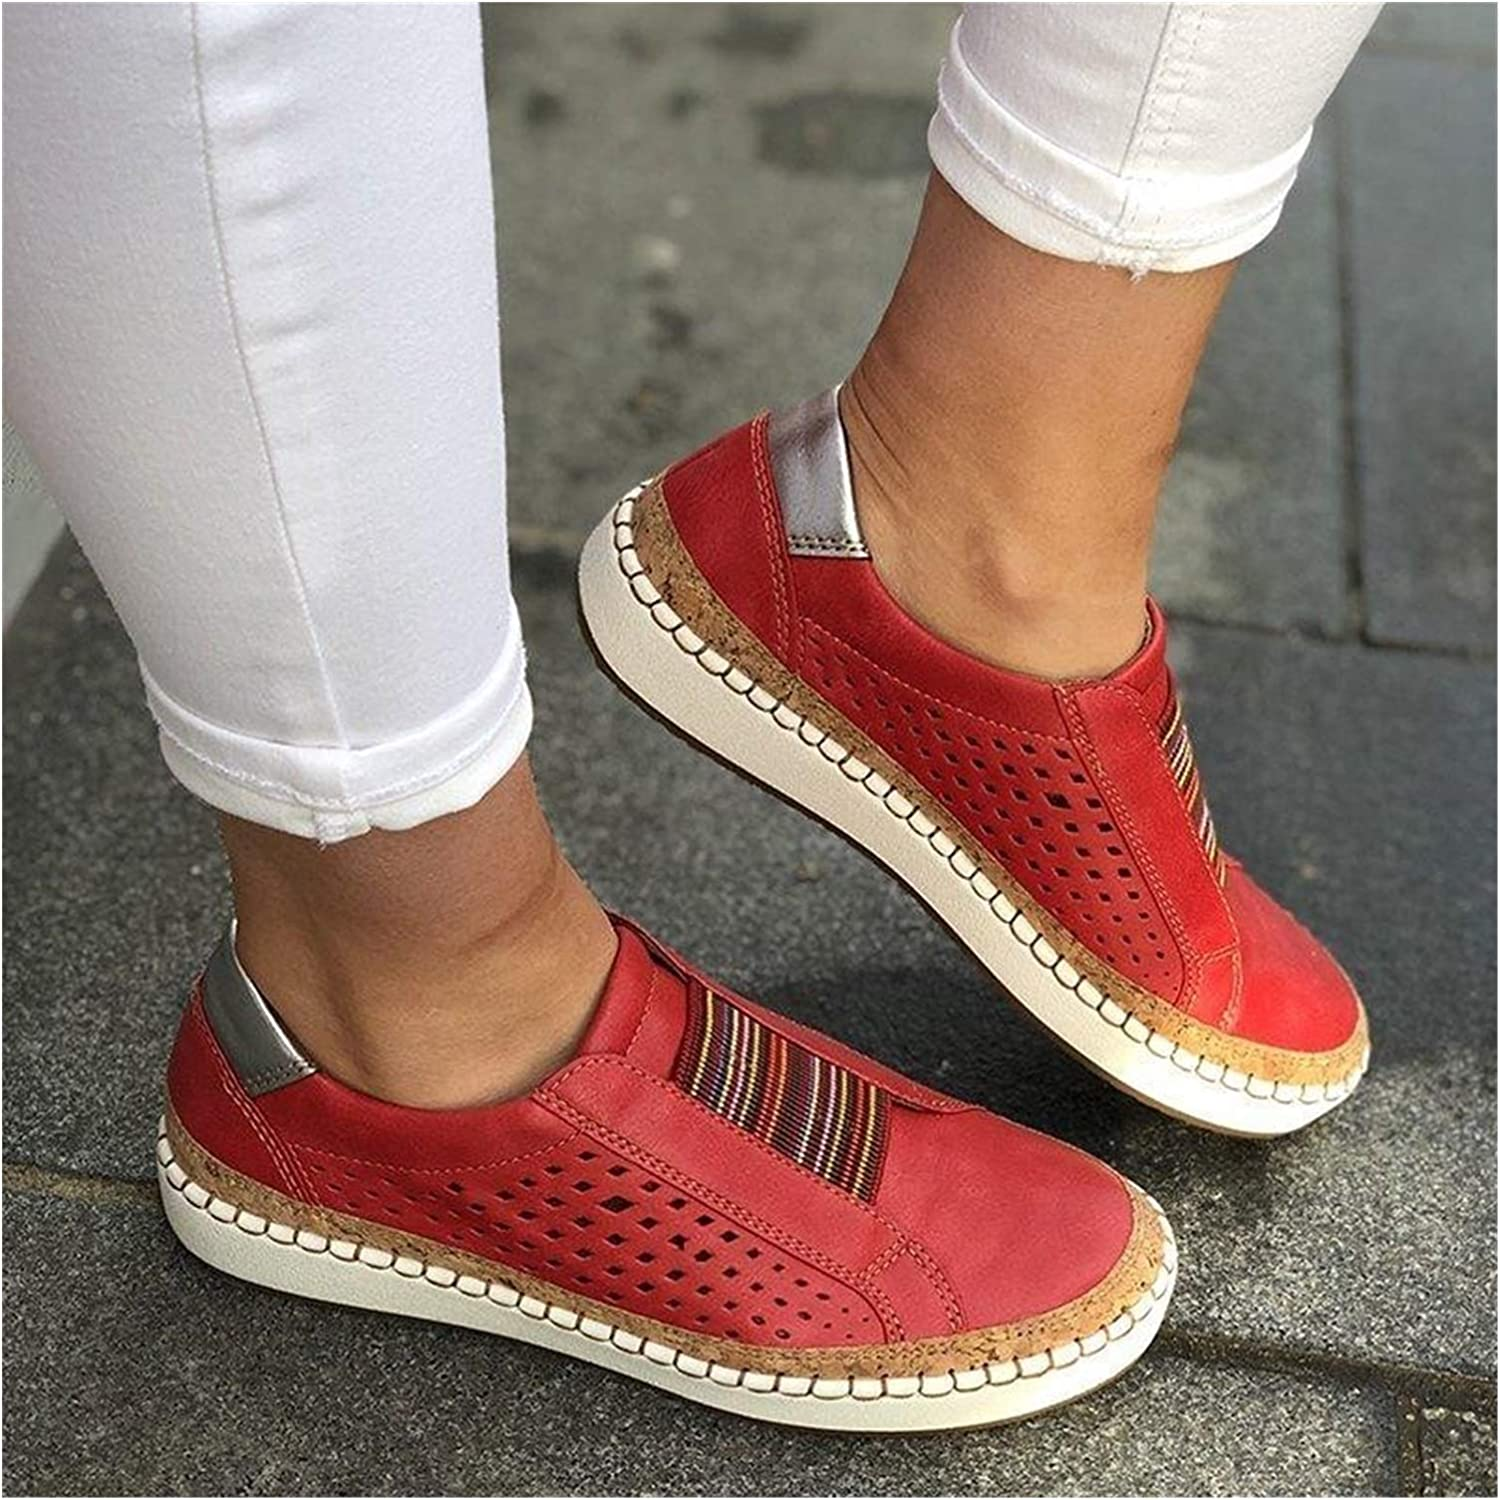 JPMSB New Women's Shoes Hollow 4 years warranty Out Vulcanize Striped Max 82% OFF Woman